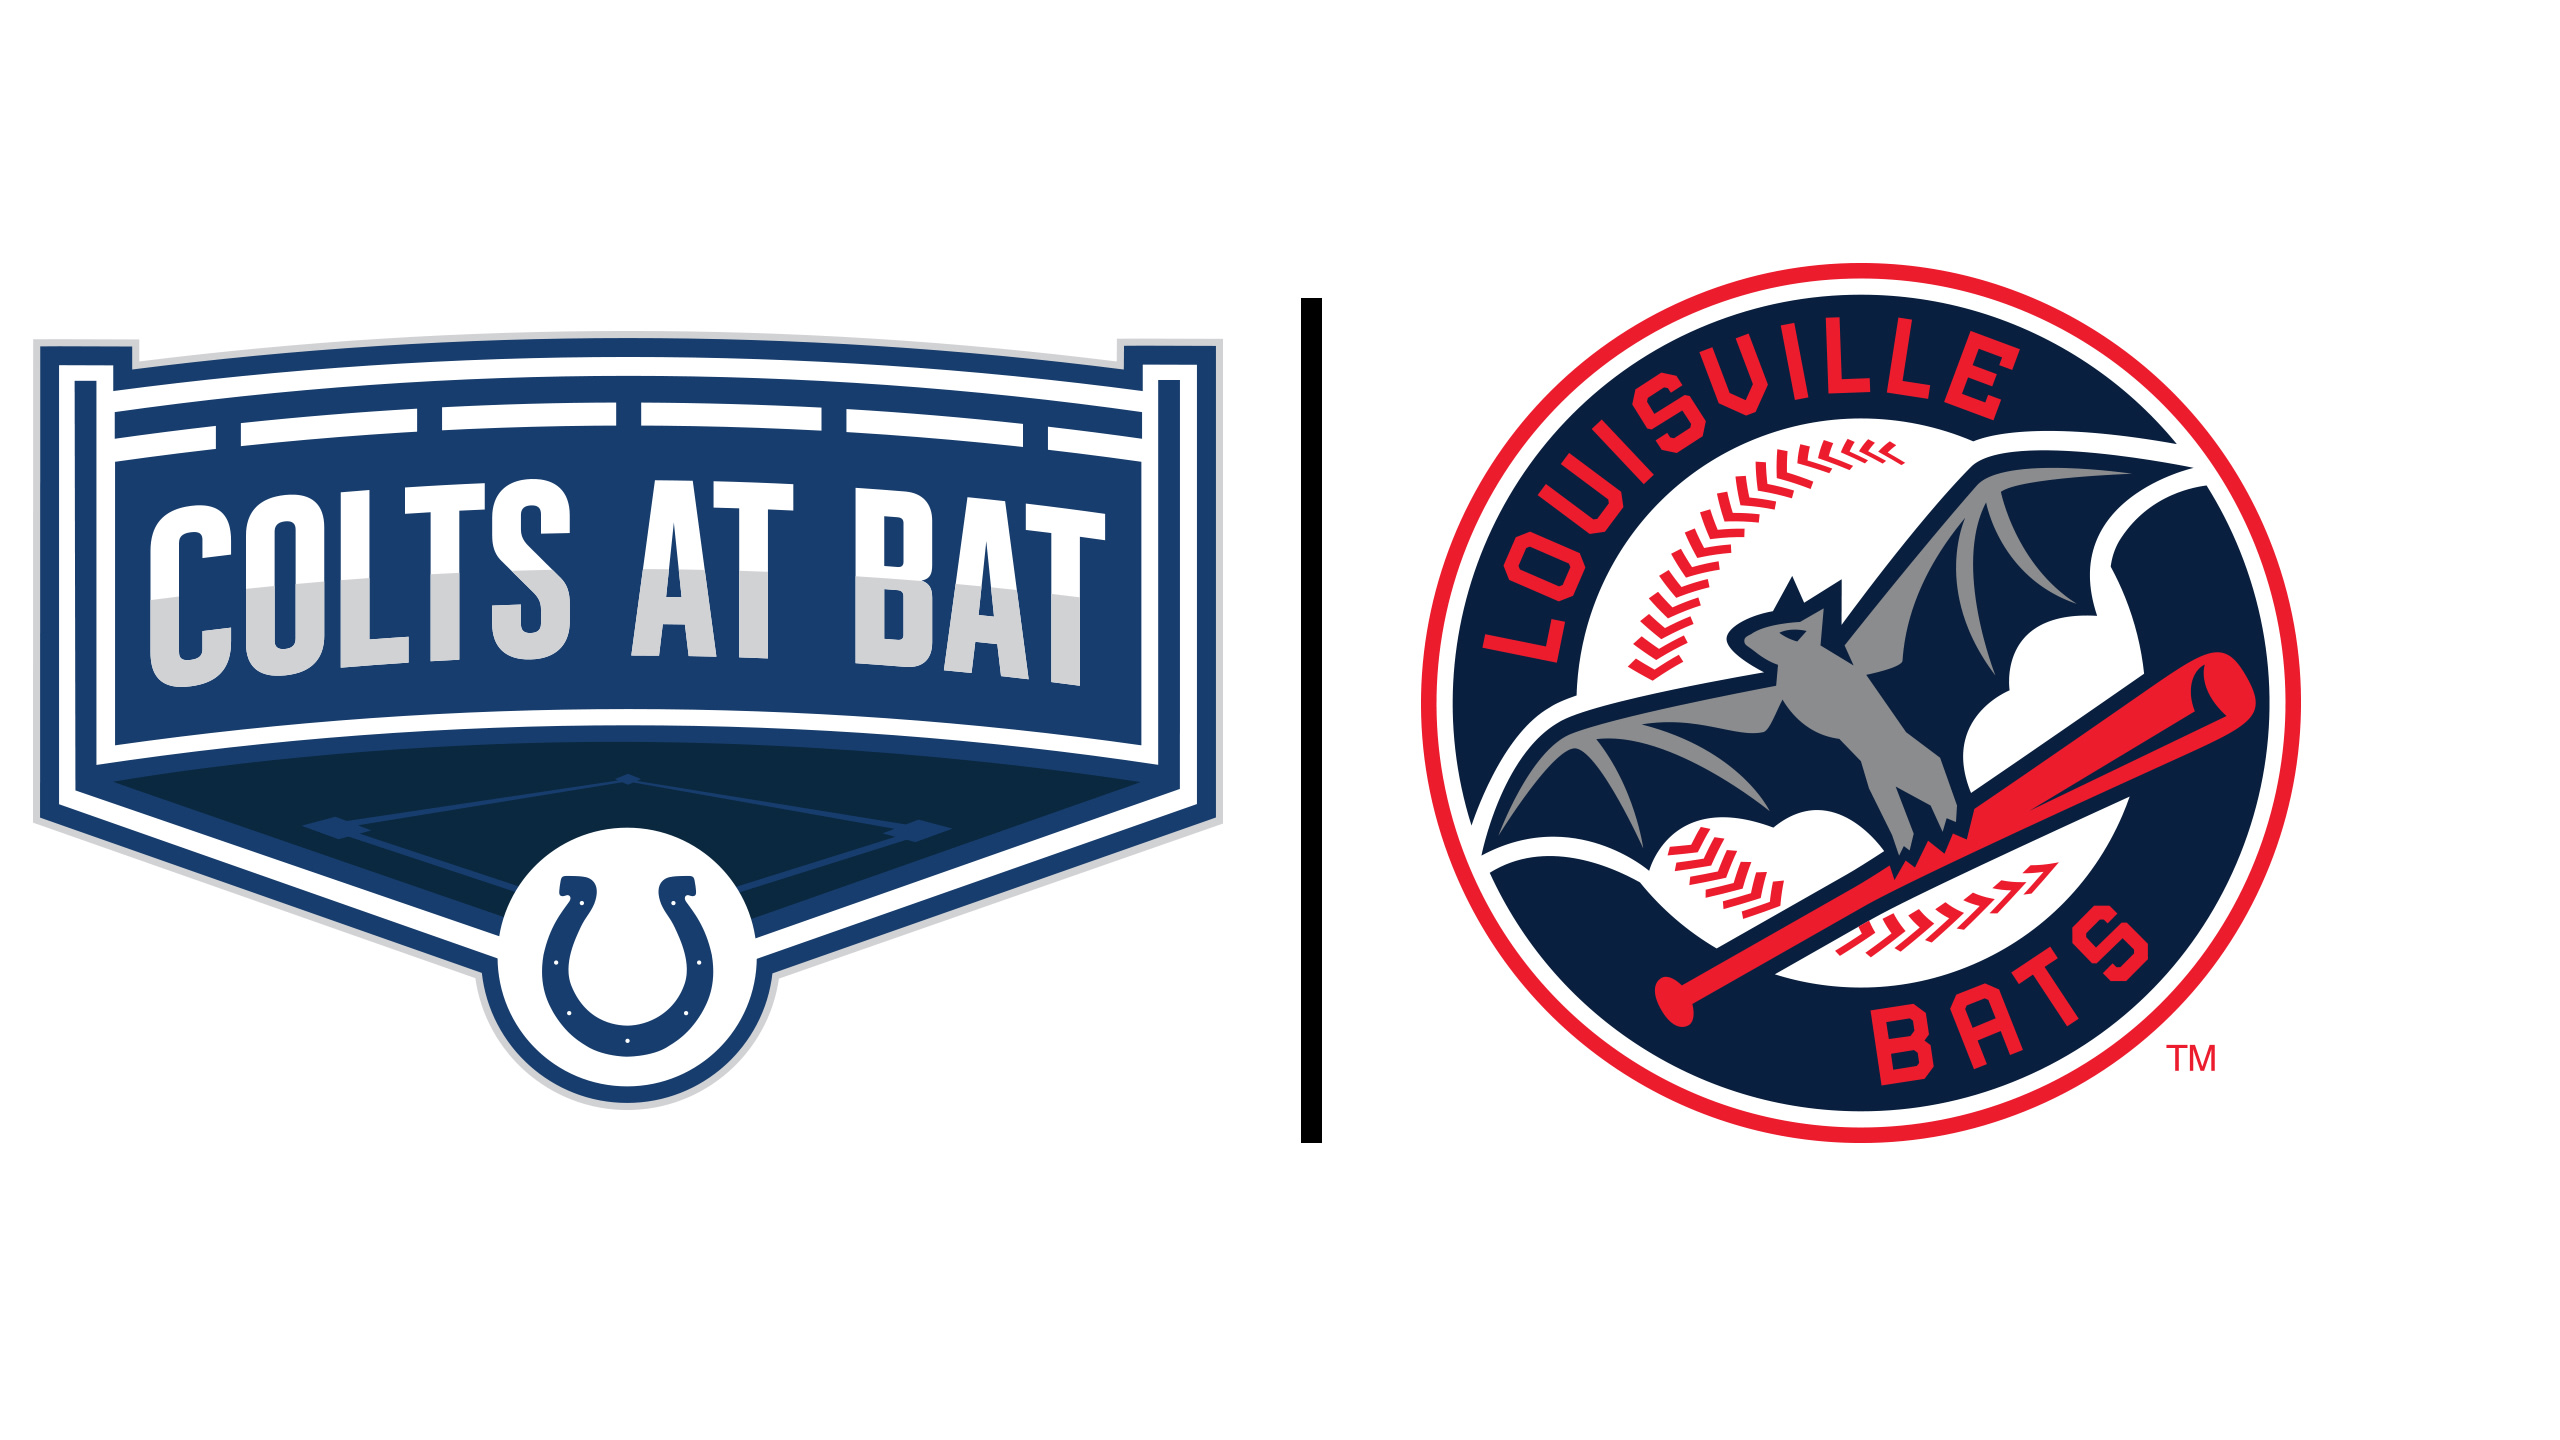 Louisville Bats - Thursday, May 23 at 5:30PM vs Indianapolis Indians, Players: TE Eric Ebron & CB Kenny Moore, Location: Louisville Slugger Field